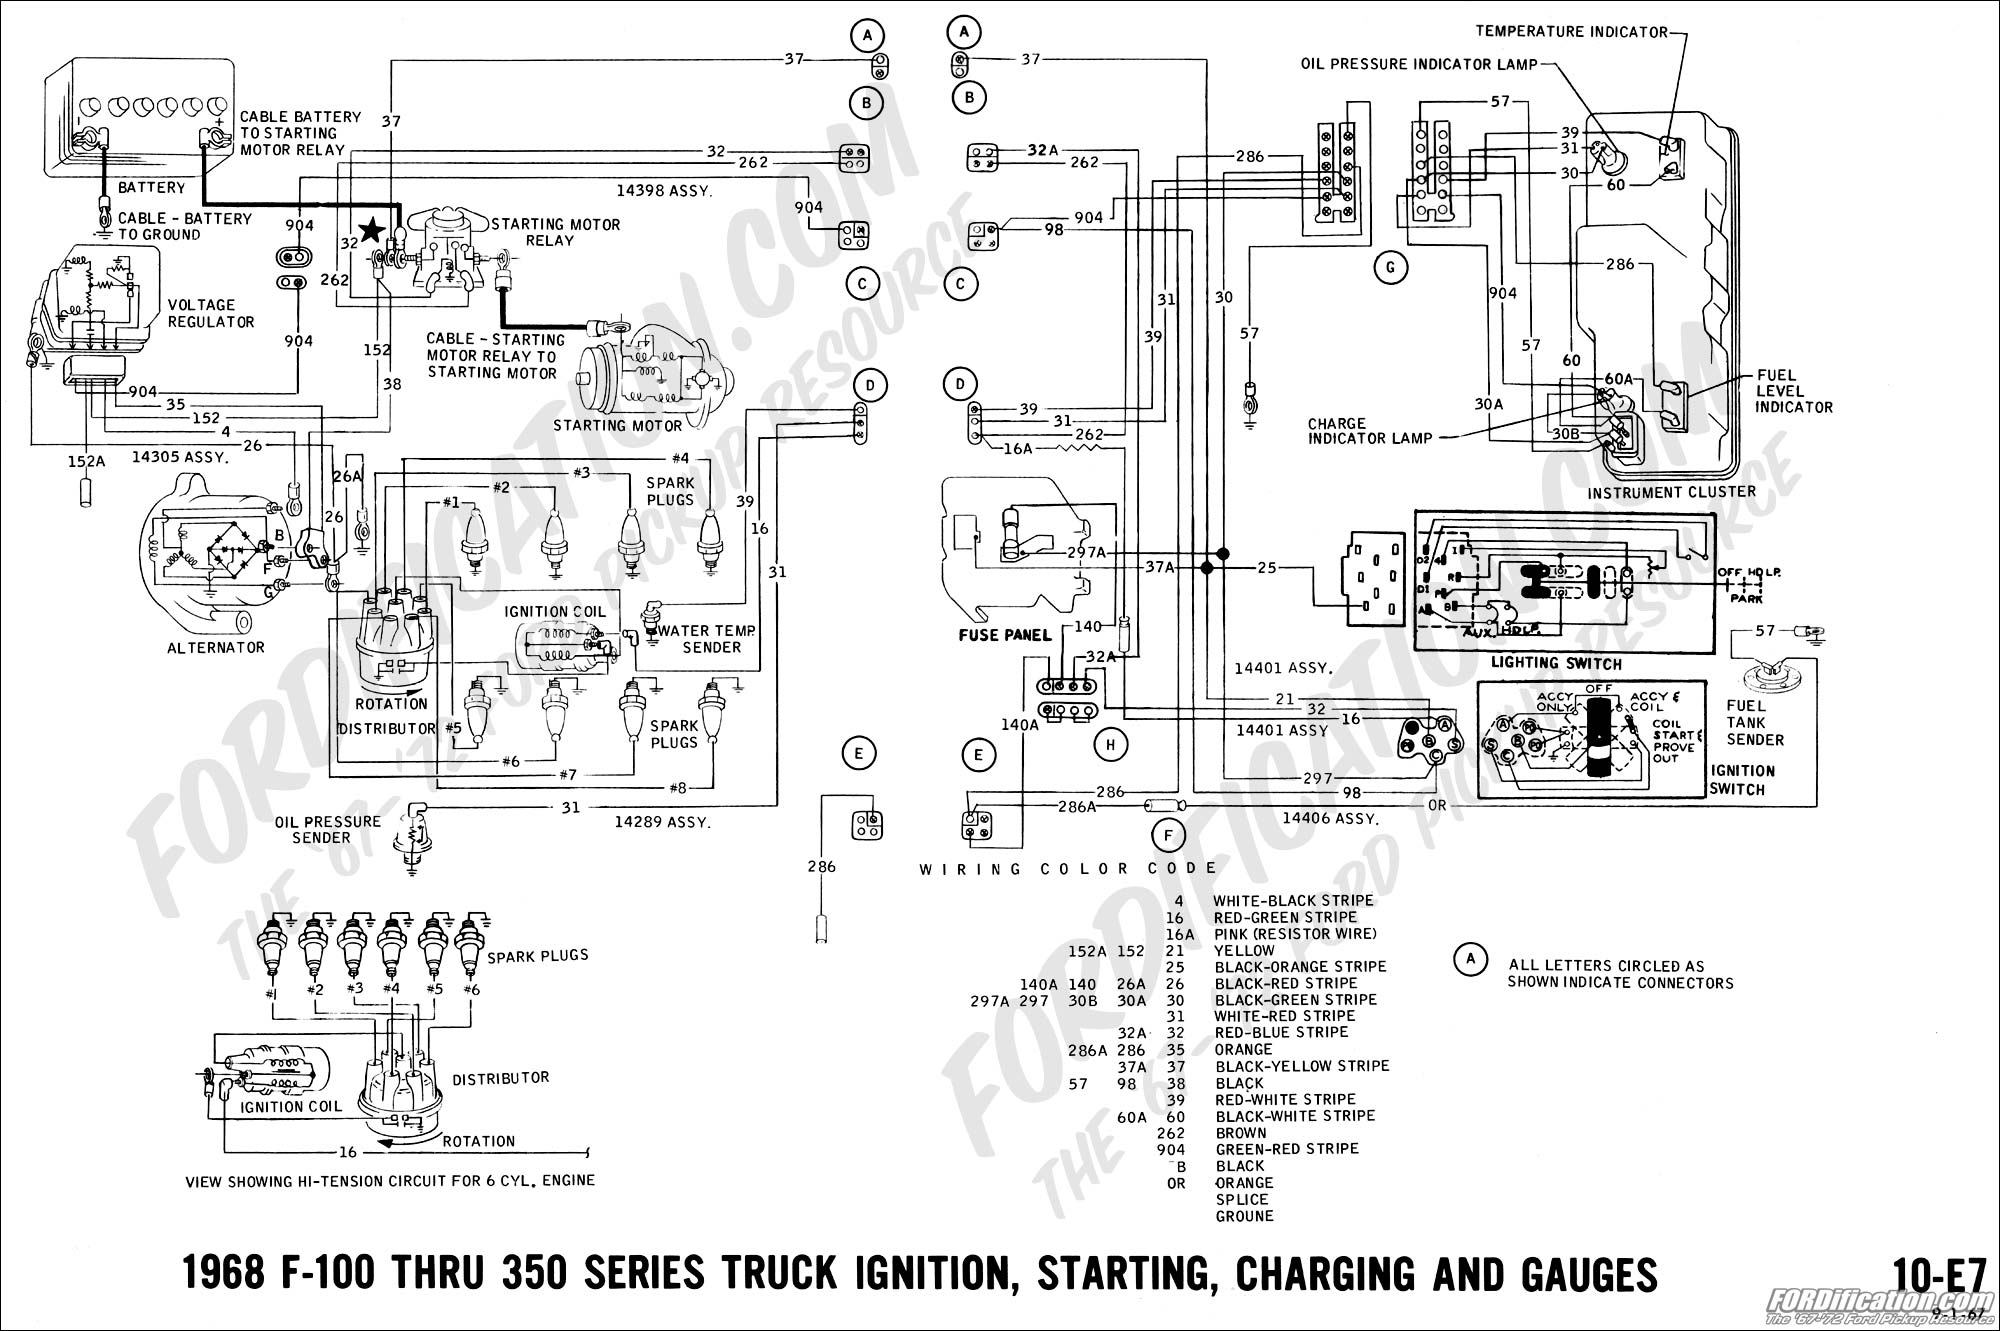 1969 Lincoln Wiring Diagram Trusted Schematics Diagrams Classic Cougar Community Everything A Mercury Owner Needs Ford Truck Technical Drawings And Section H Rh Fordification Com Corvette Mark Iii